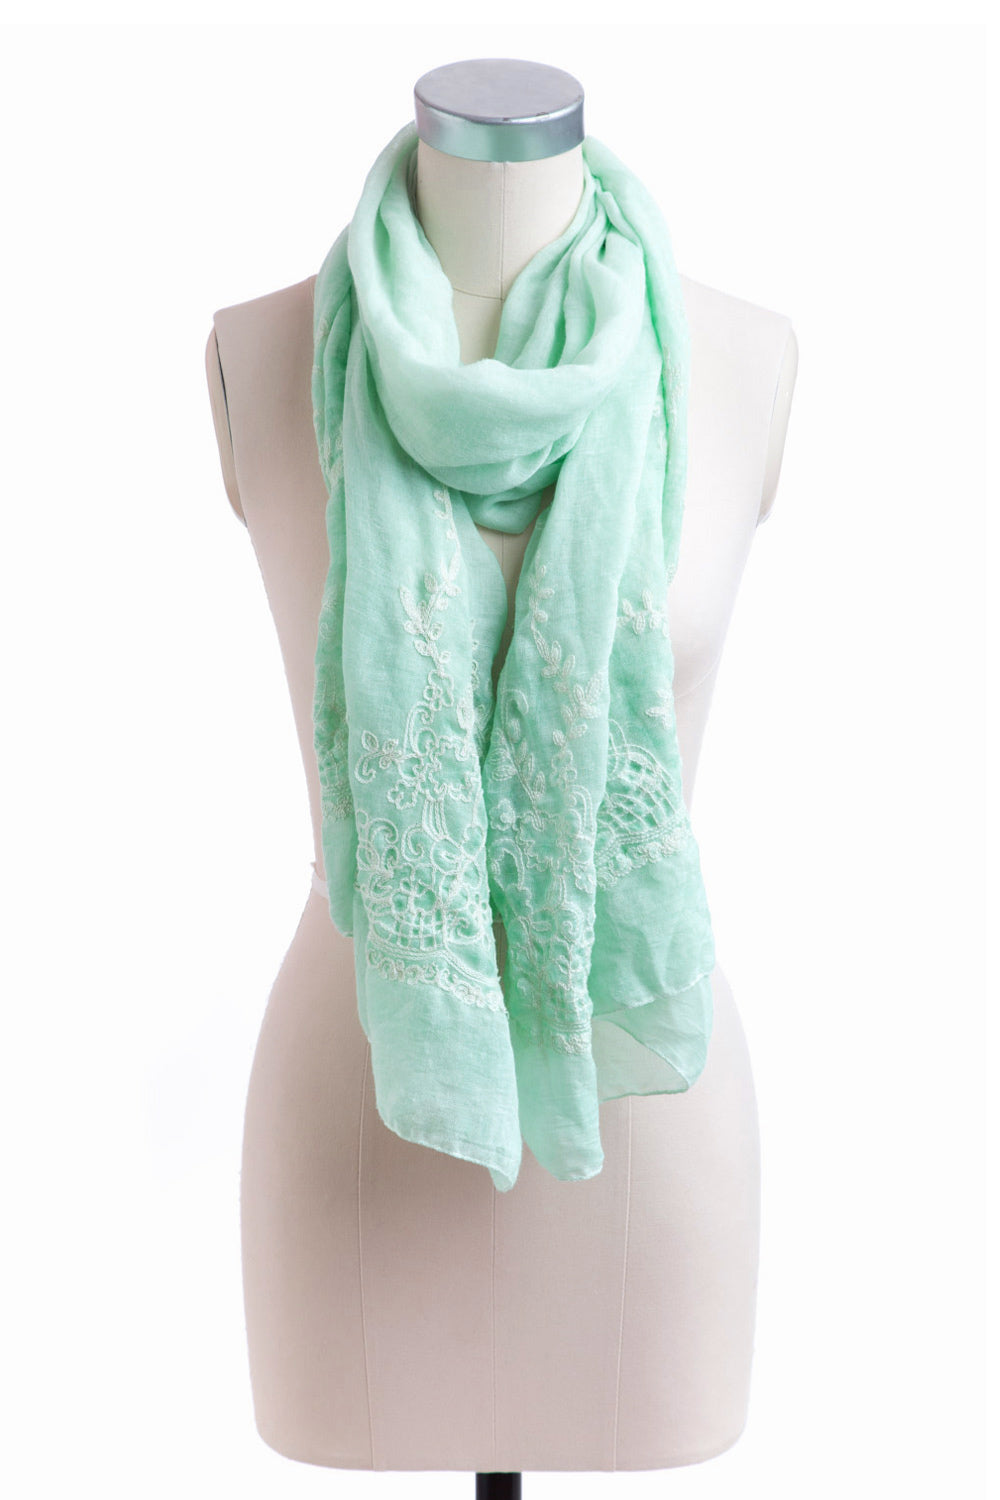 Type 2 A Healing Touch Scarf In Mint